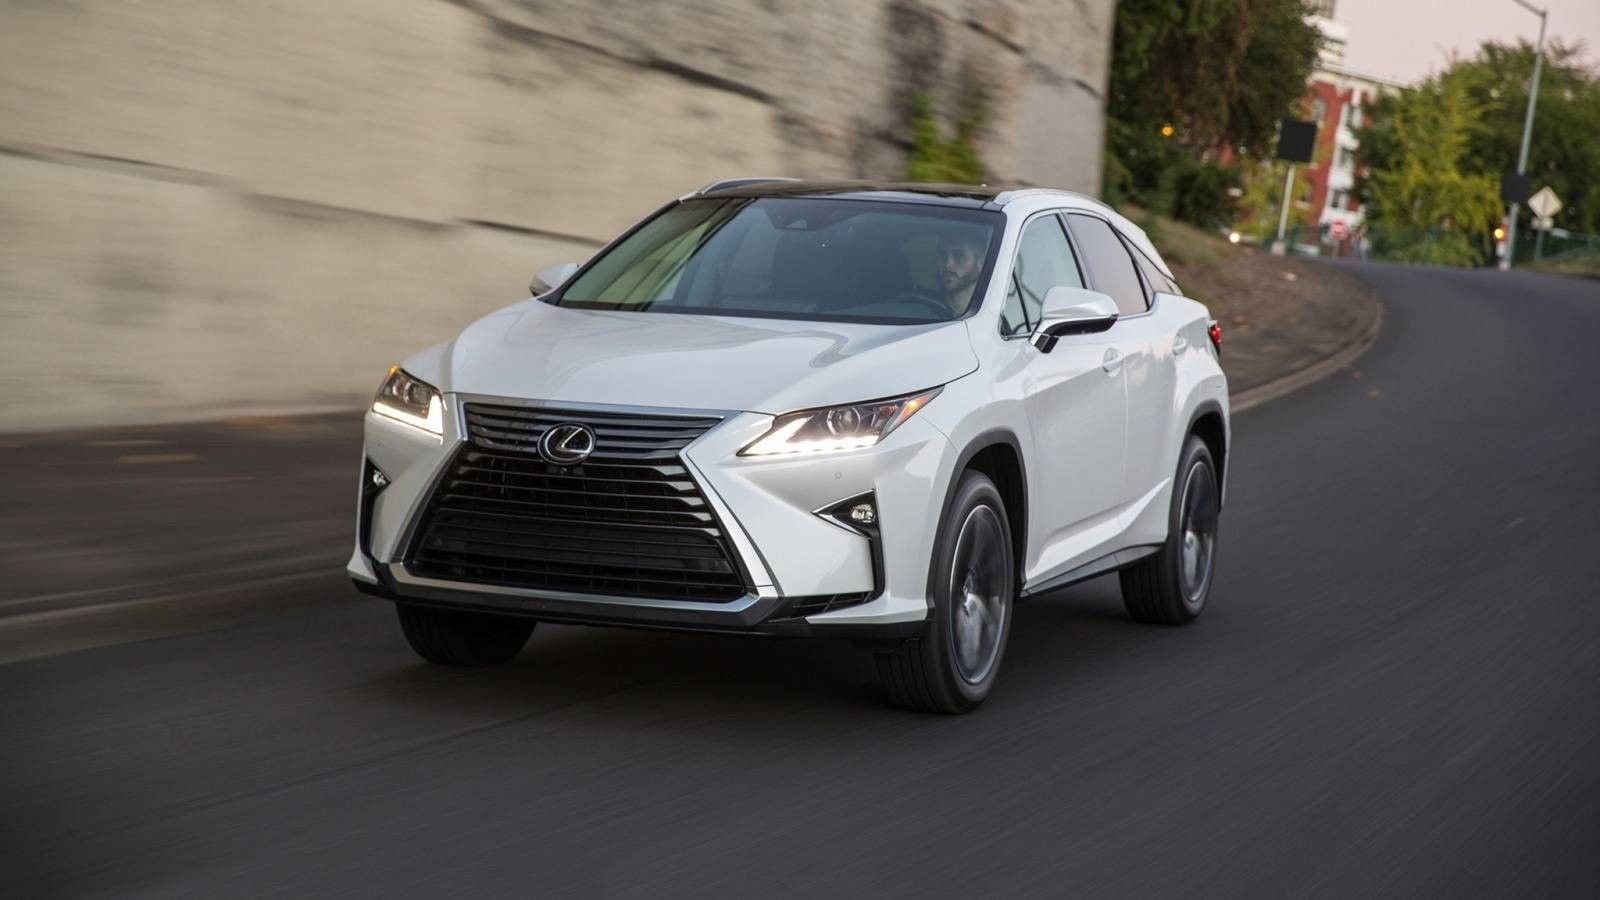 2018 Lexus Rx 350 Picture, Release date, and Review